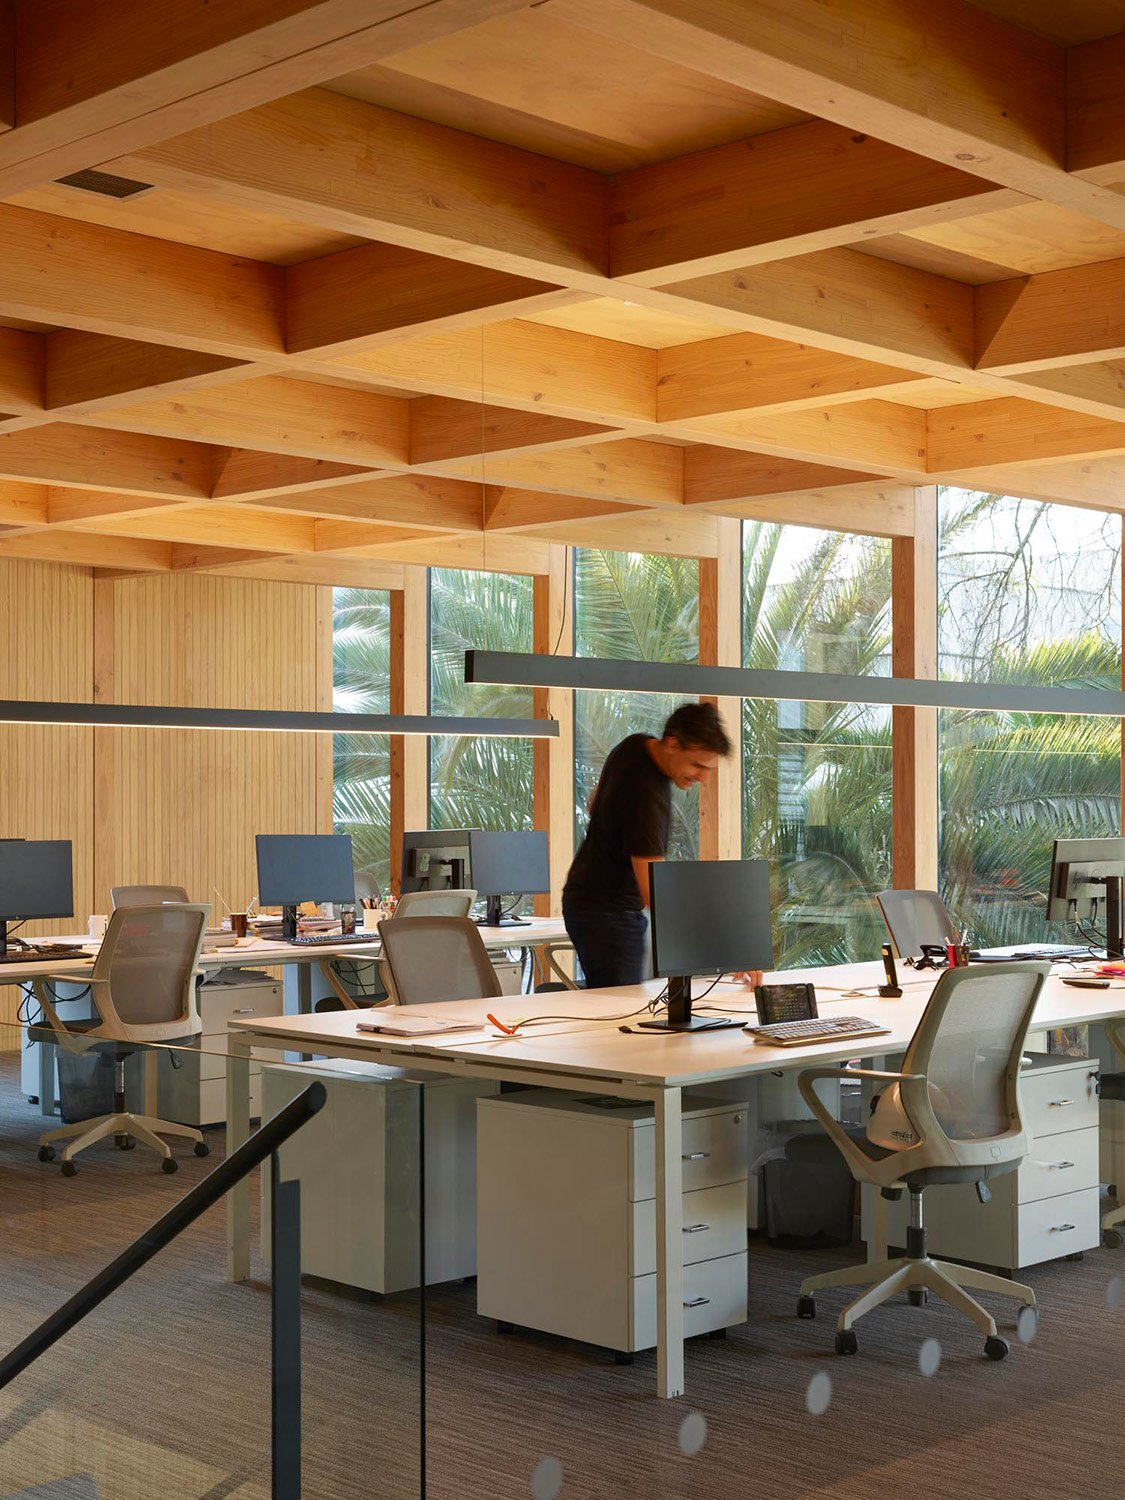 mass timber coffered ceiling Roland Halbe